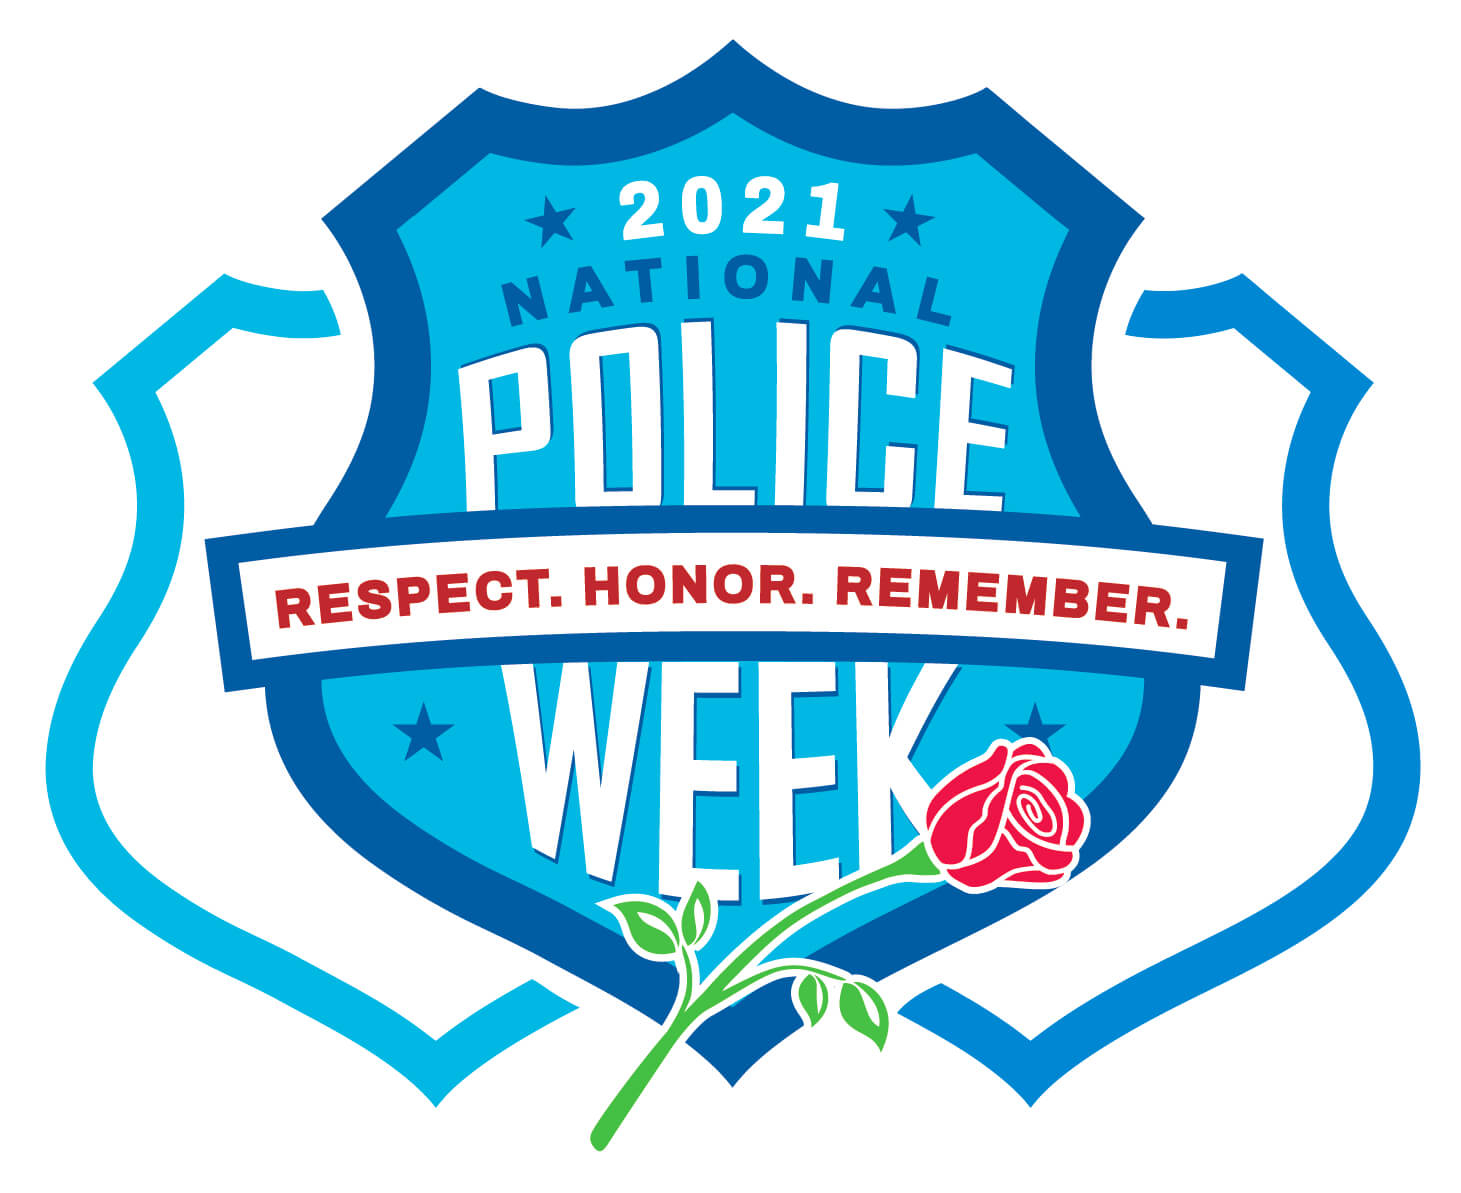 Liberty University honors law enforcement for National Police Week, continues to train next generation of heroes